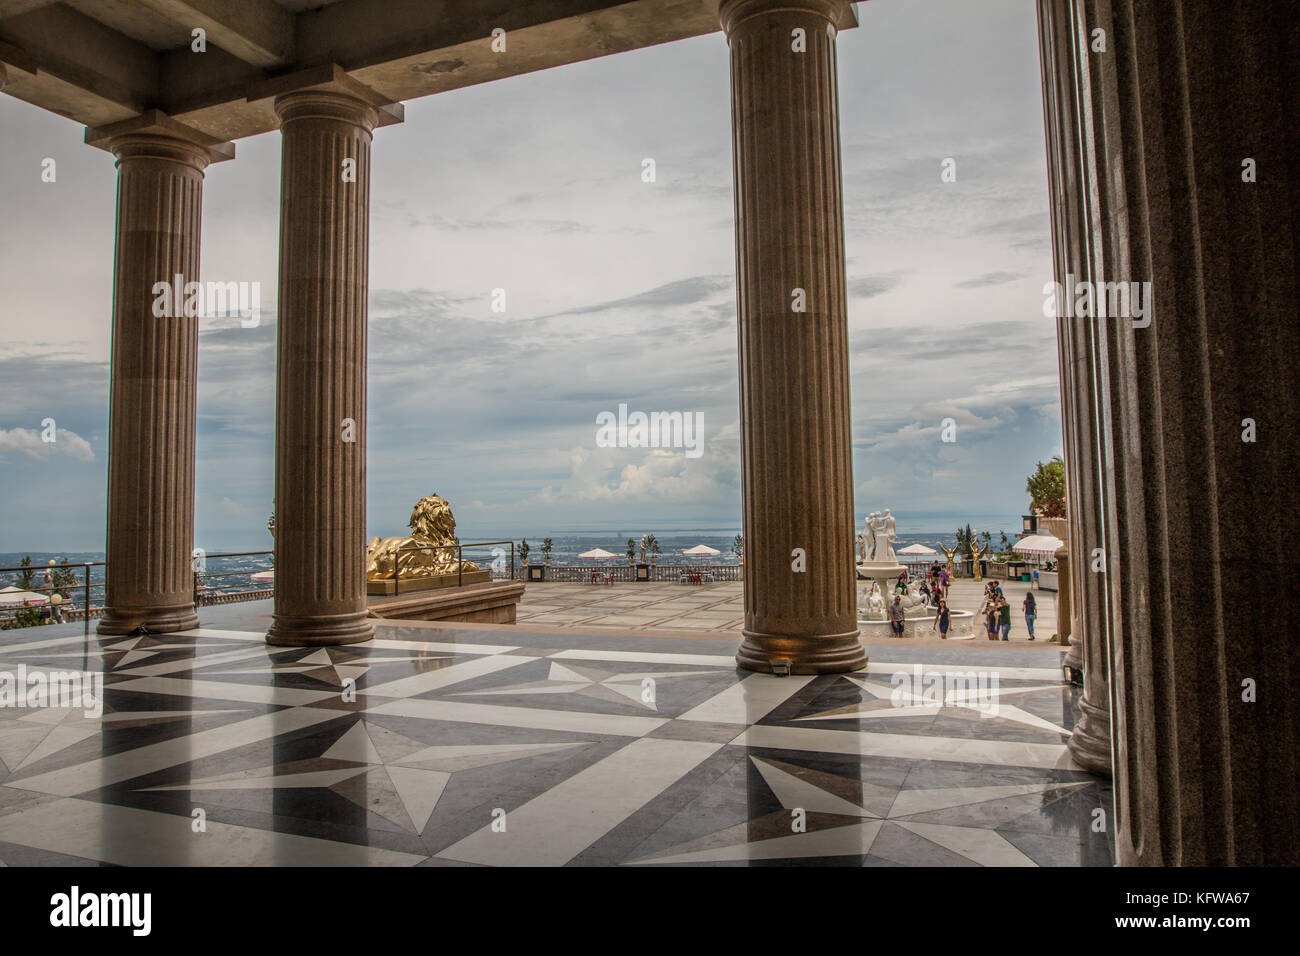 Temple of Leah Cebu Philippines - Stock Image